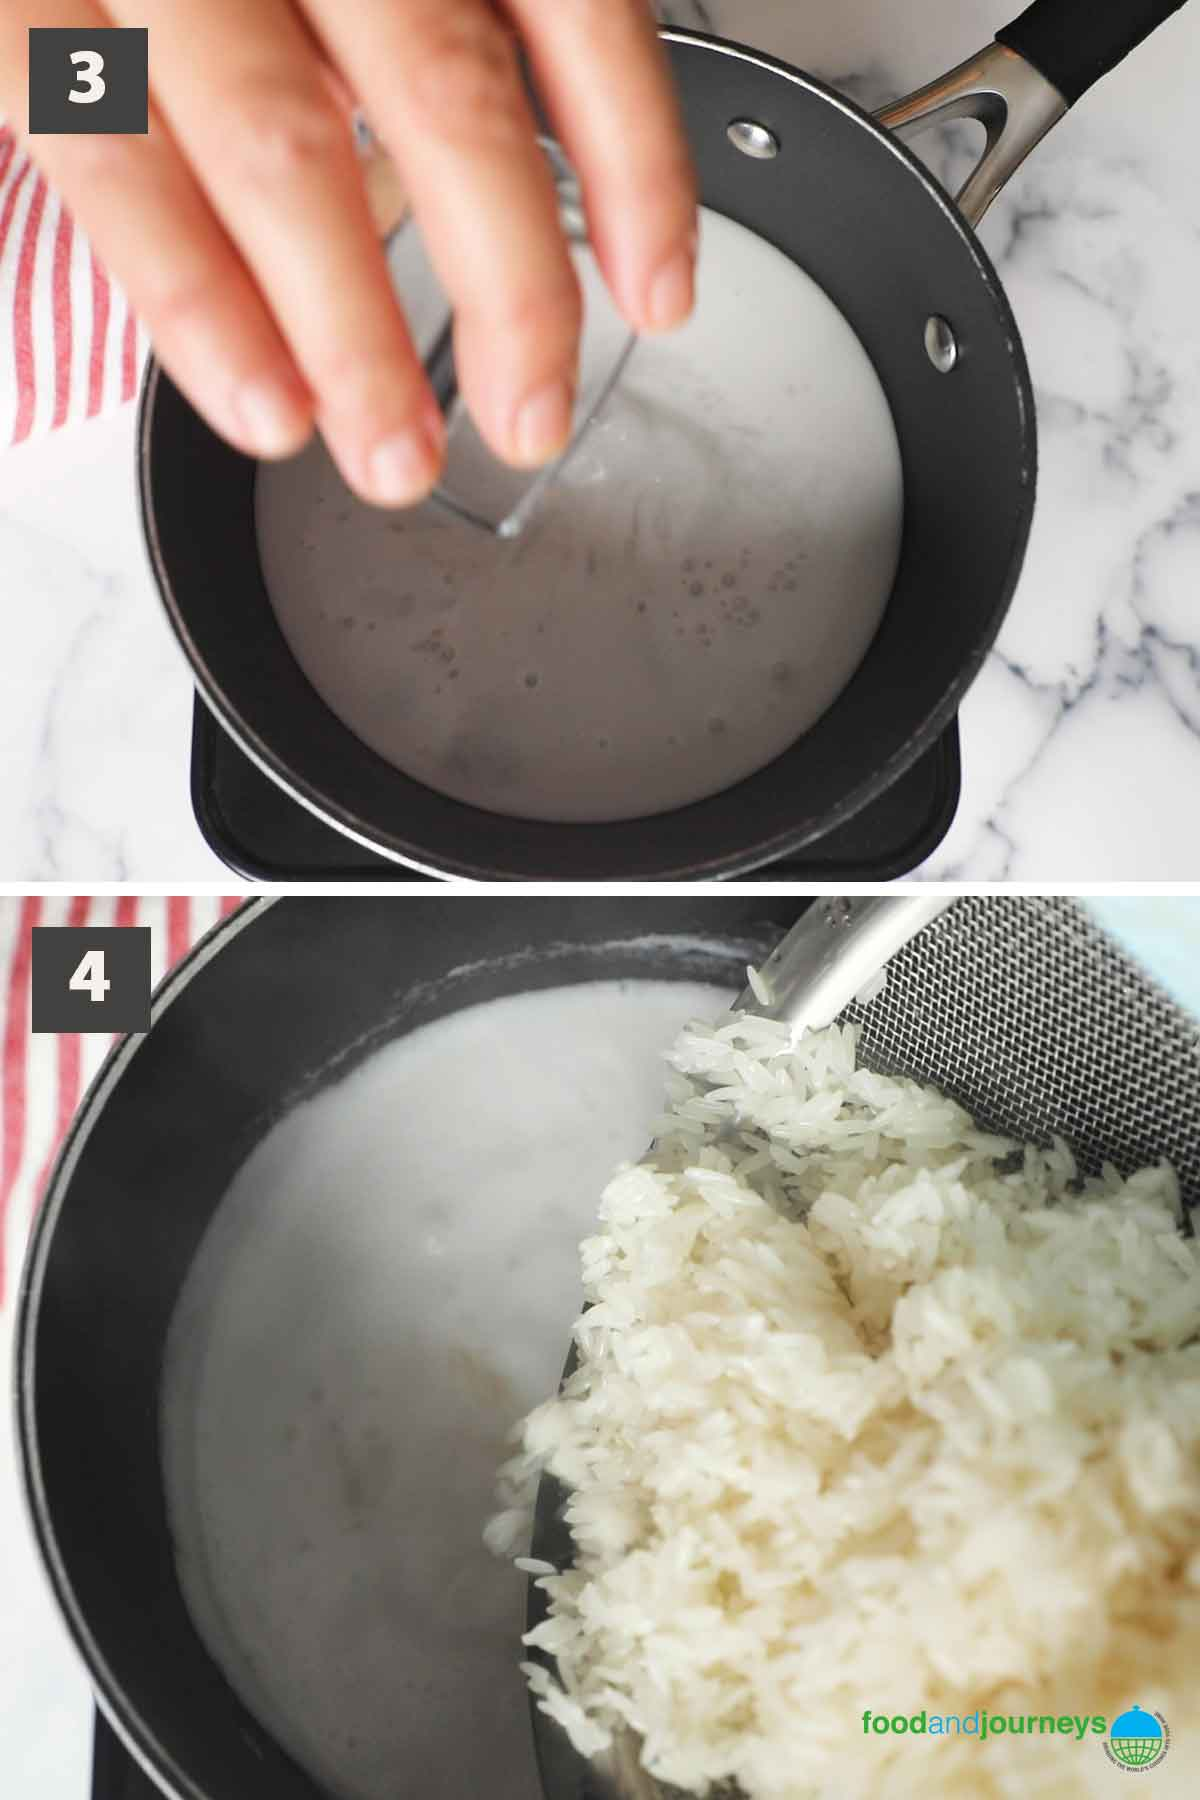 Second part of a collage of images showing the step by step process of preparing coconut jasmine rice at home.